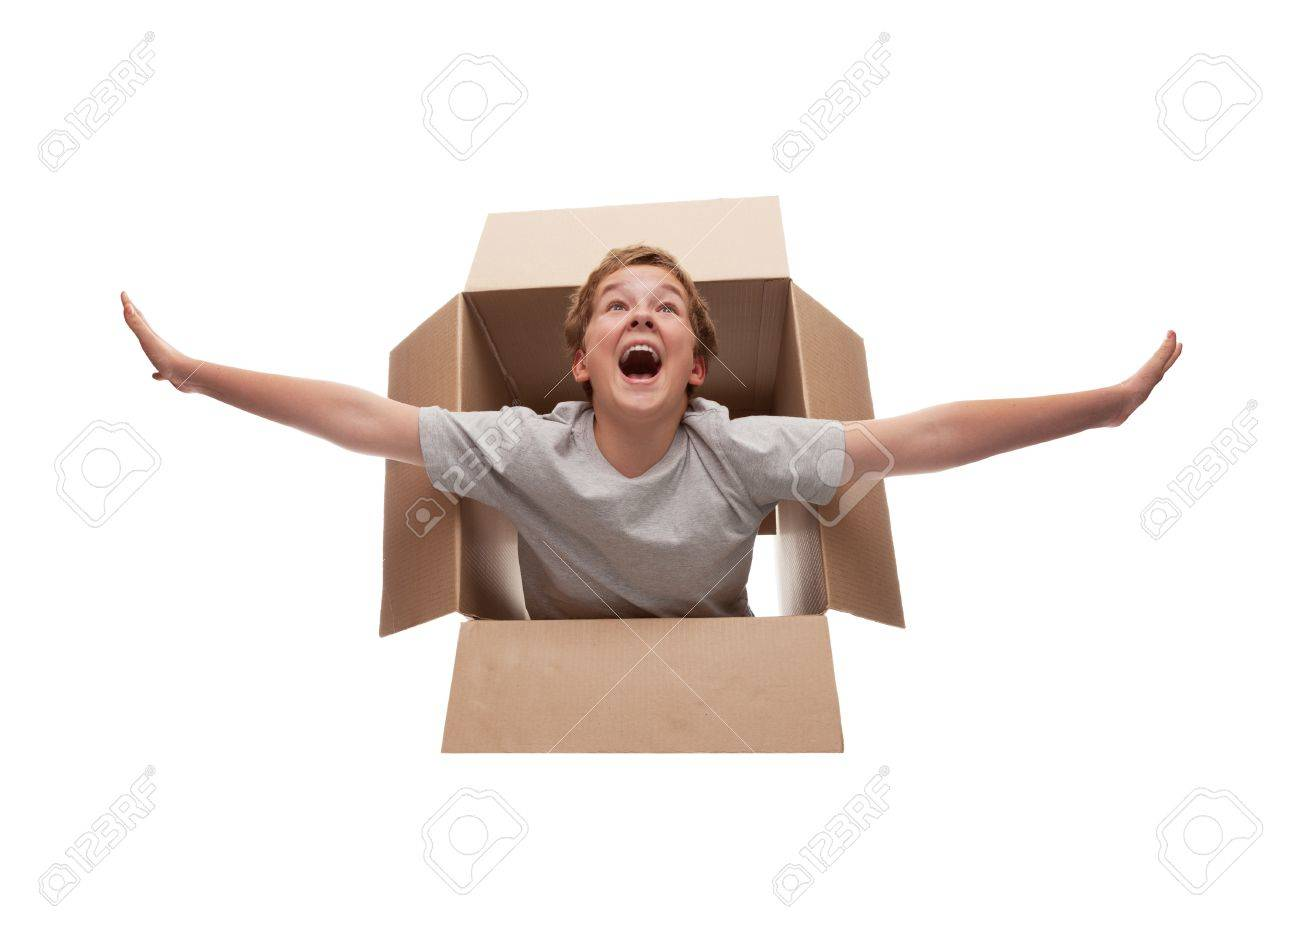 boy in a cardboard box dreams that it flies in an airplane on the sky Stock Photo - 15483031